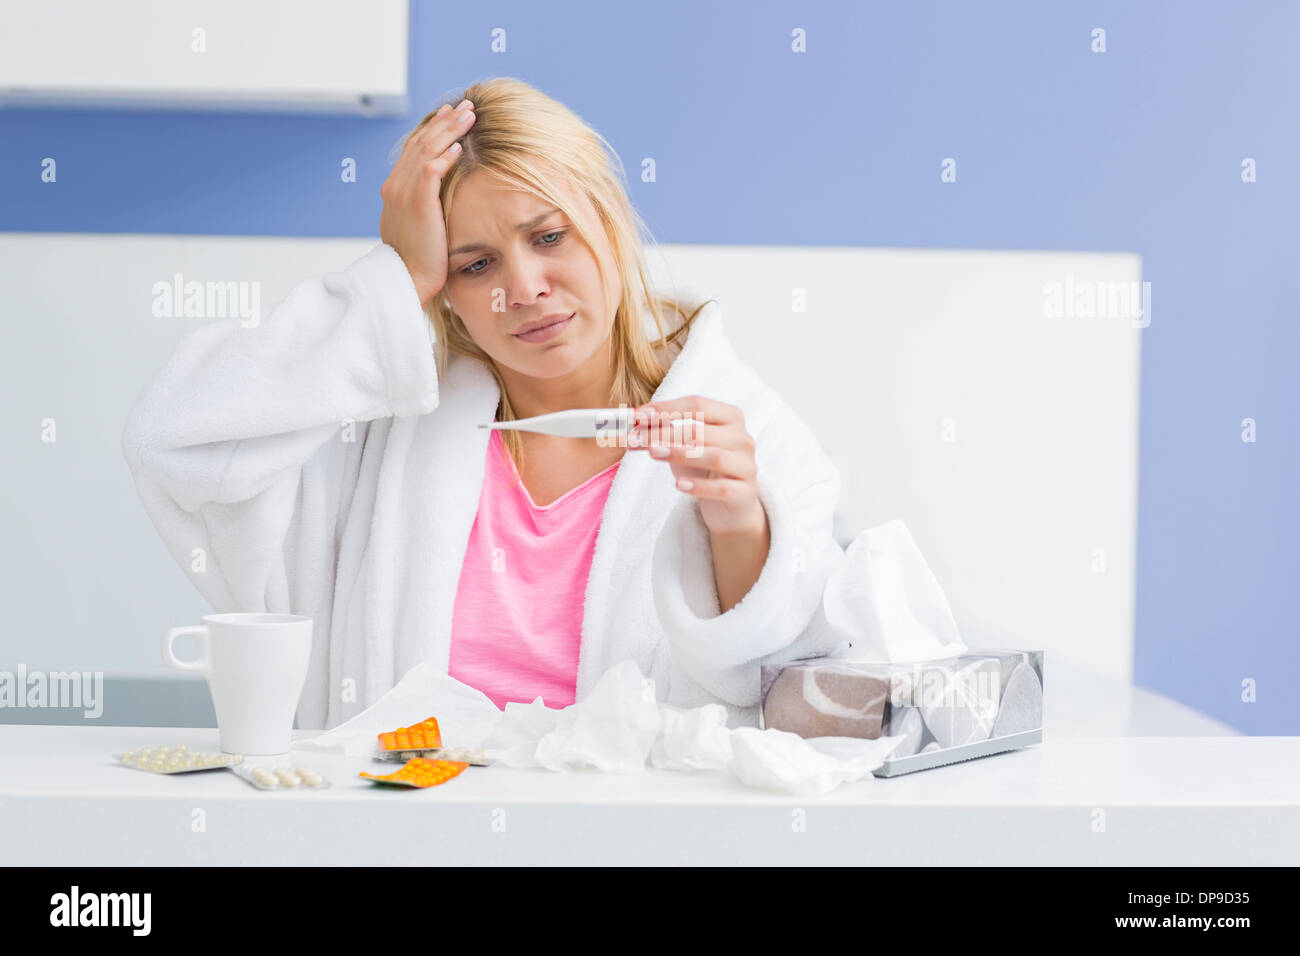 Young woman suffering from cold checking tempereature - Stock Image